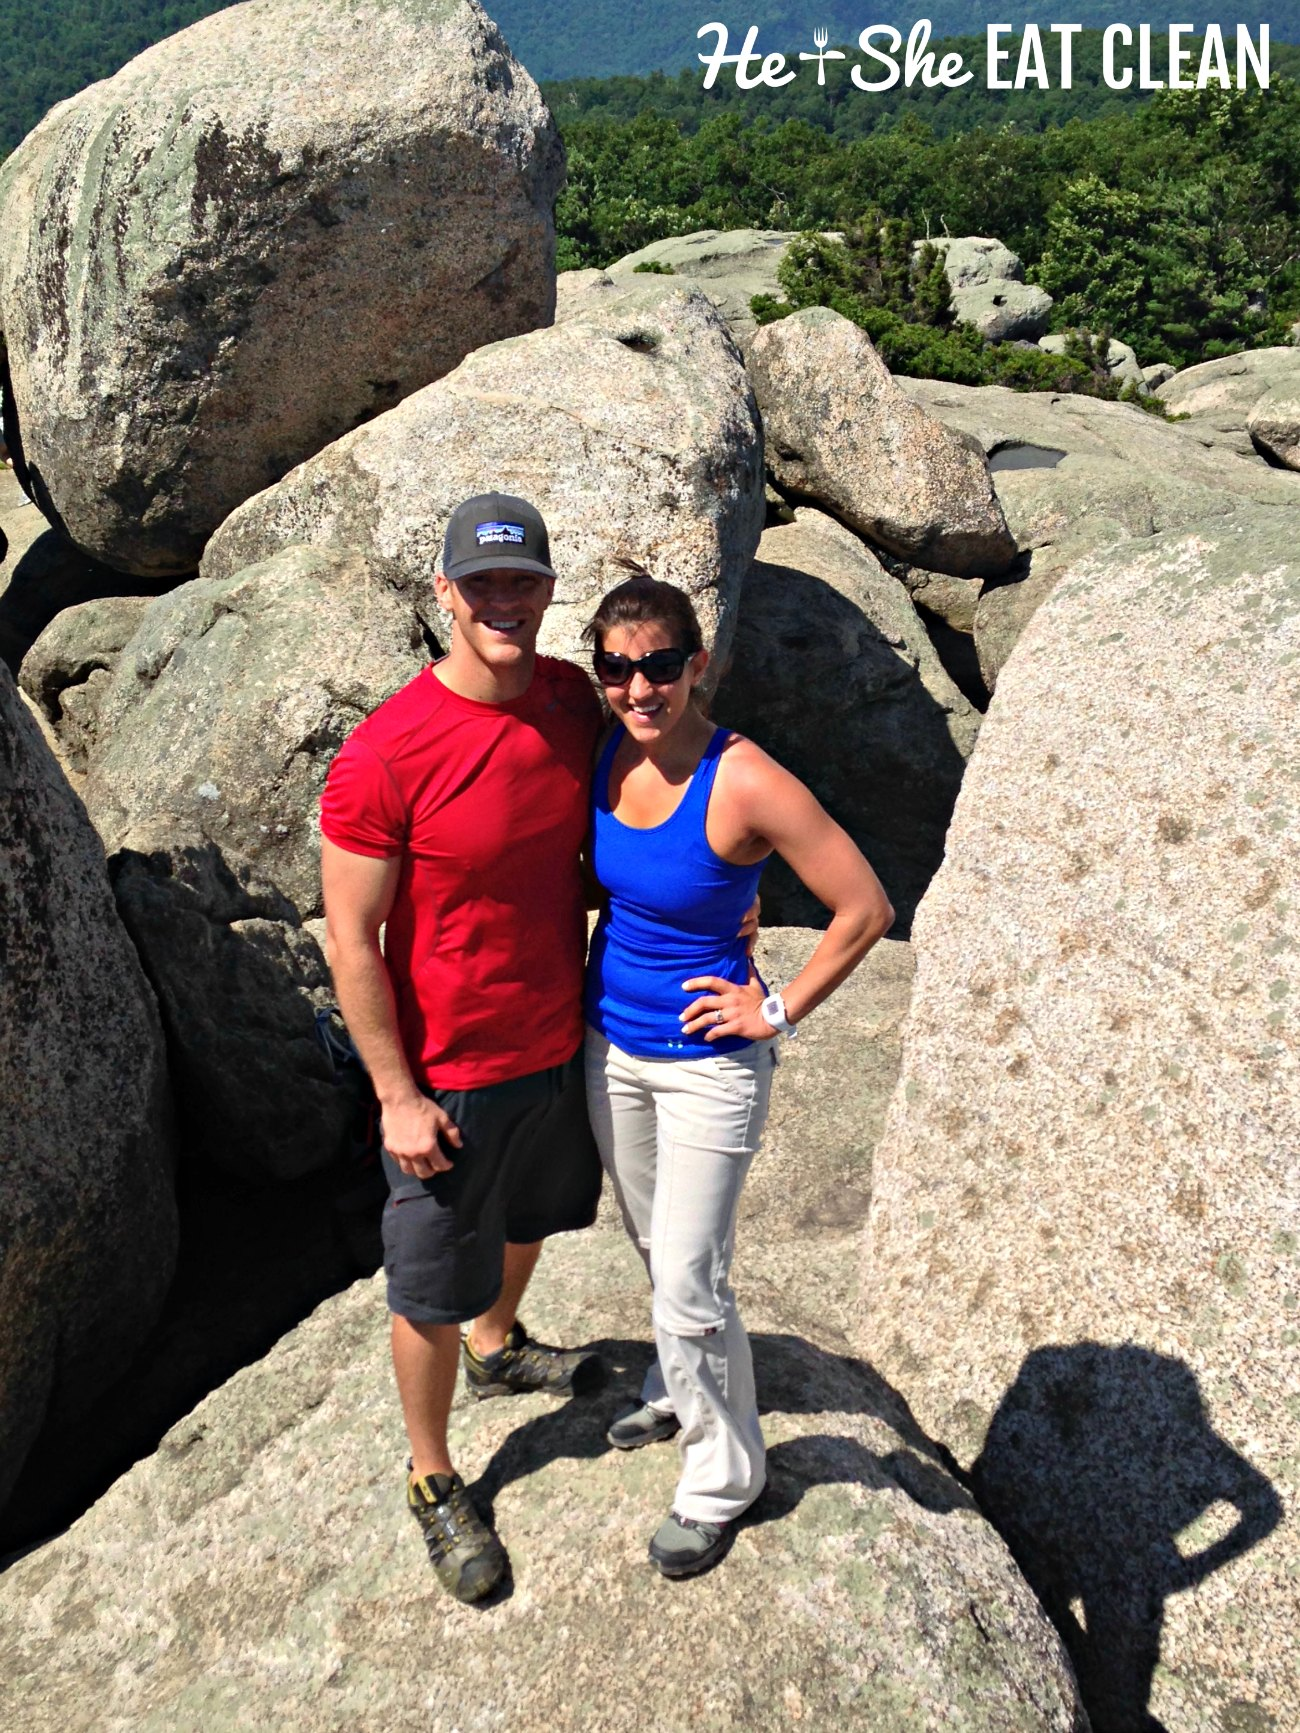 male and female standing near rocks on a hiking trail - Old Rag Mountain in Shenandoah National Park